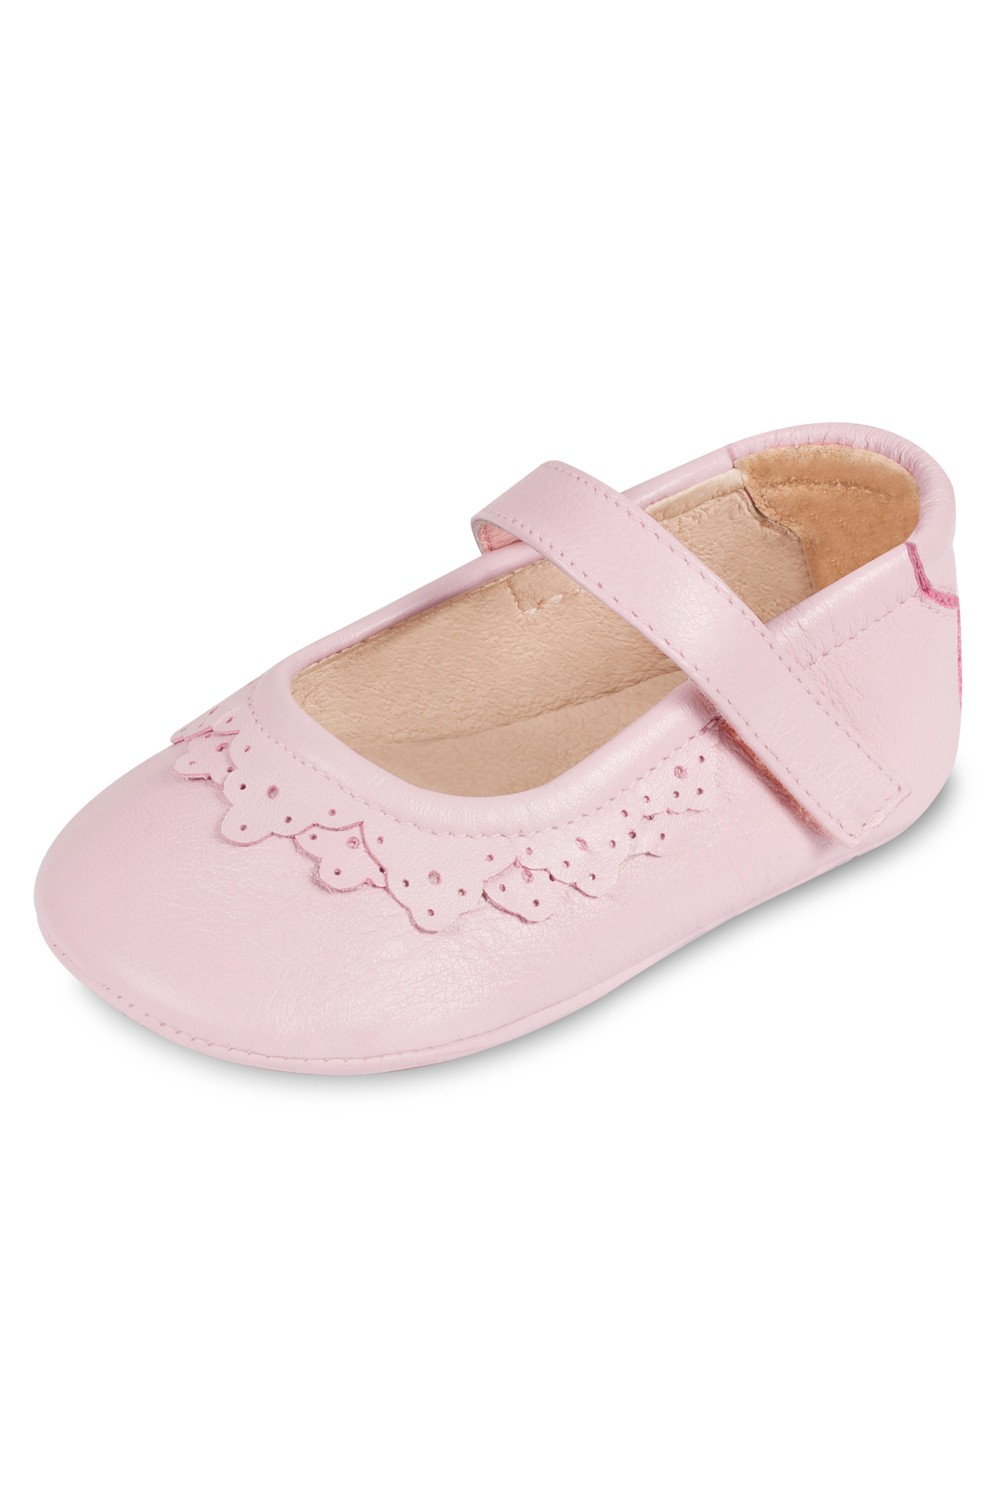 Sonatina Babies Fashion Shoes